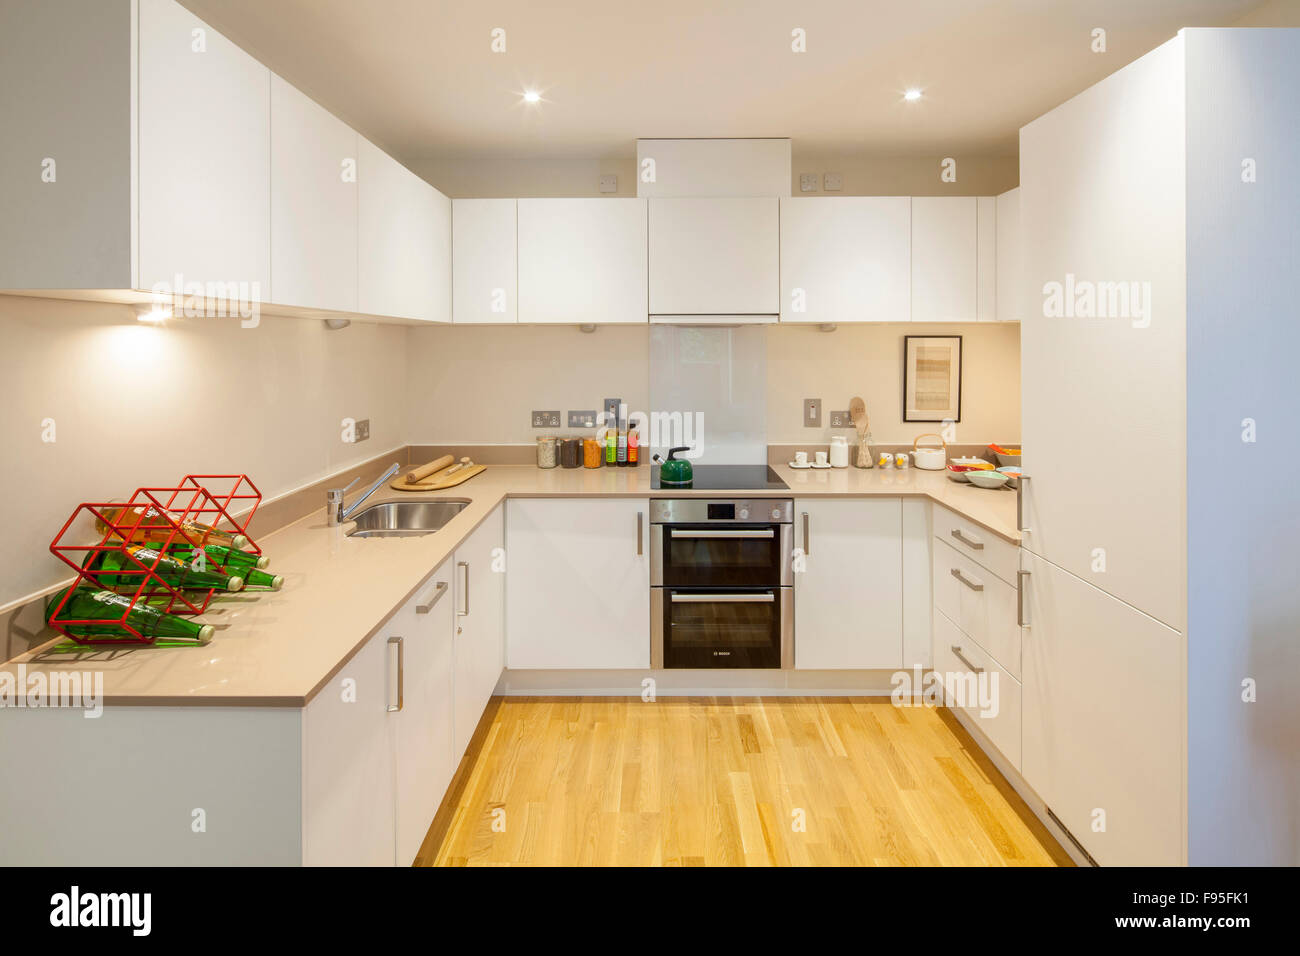 The Ocean Estate project is a new build development of 462 mixed tenure housing, made up of social units for rent, - Stock Image